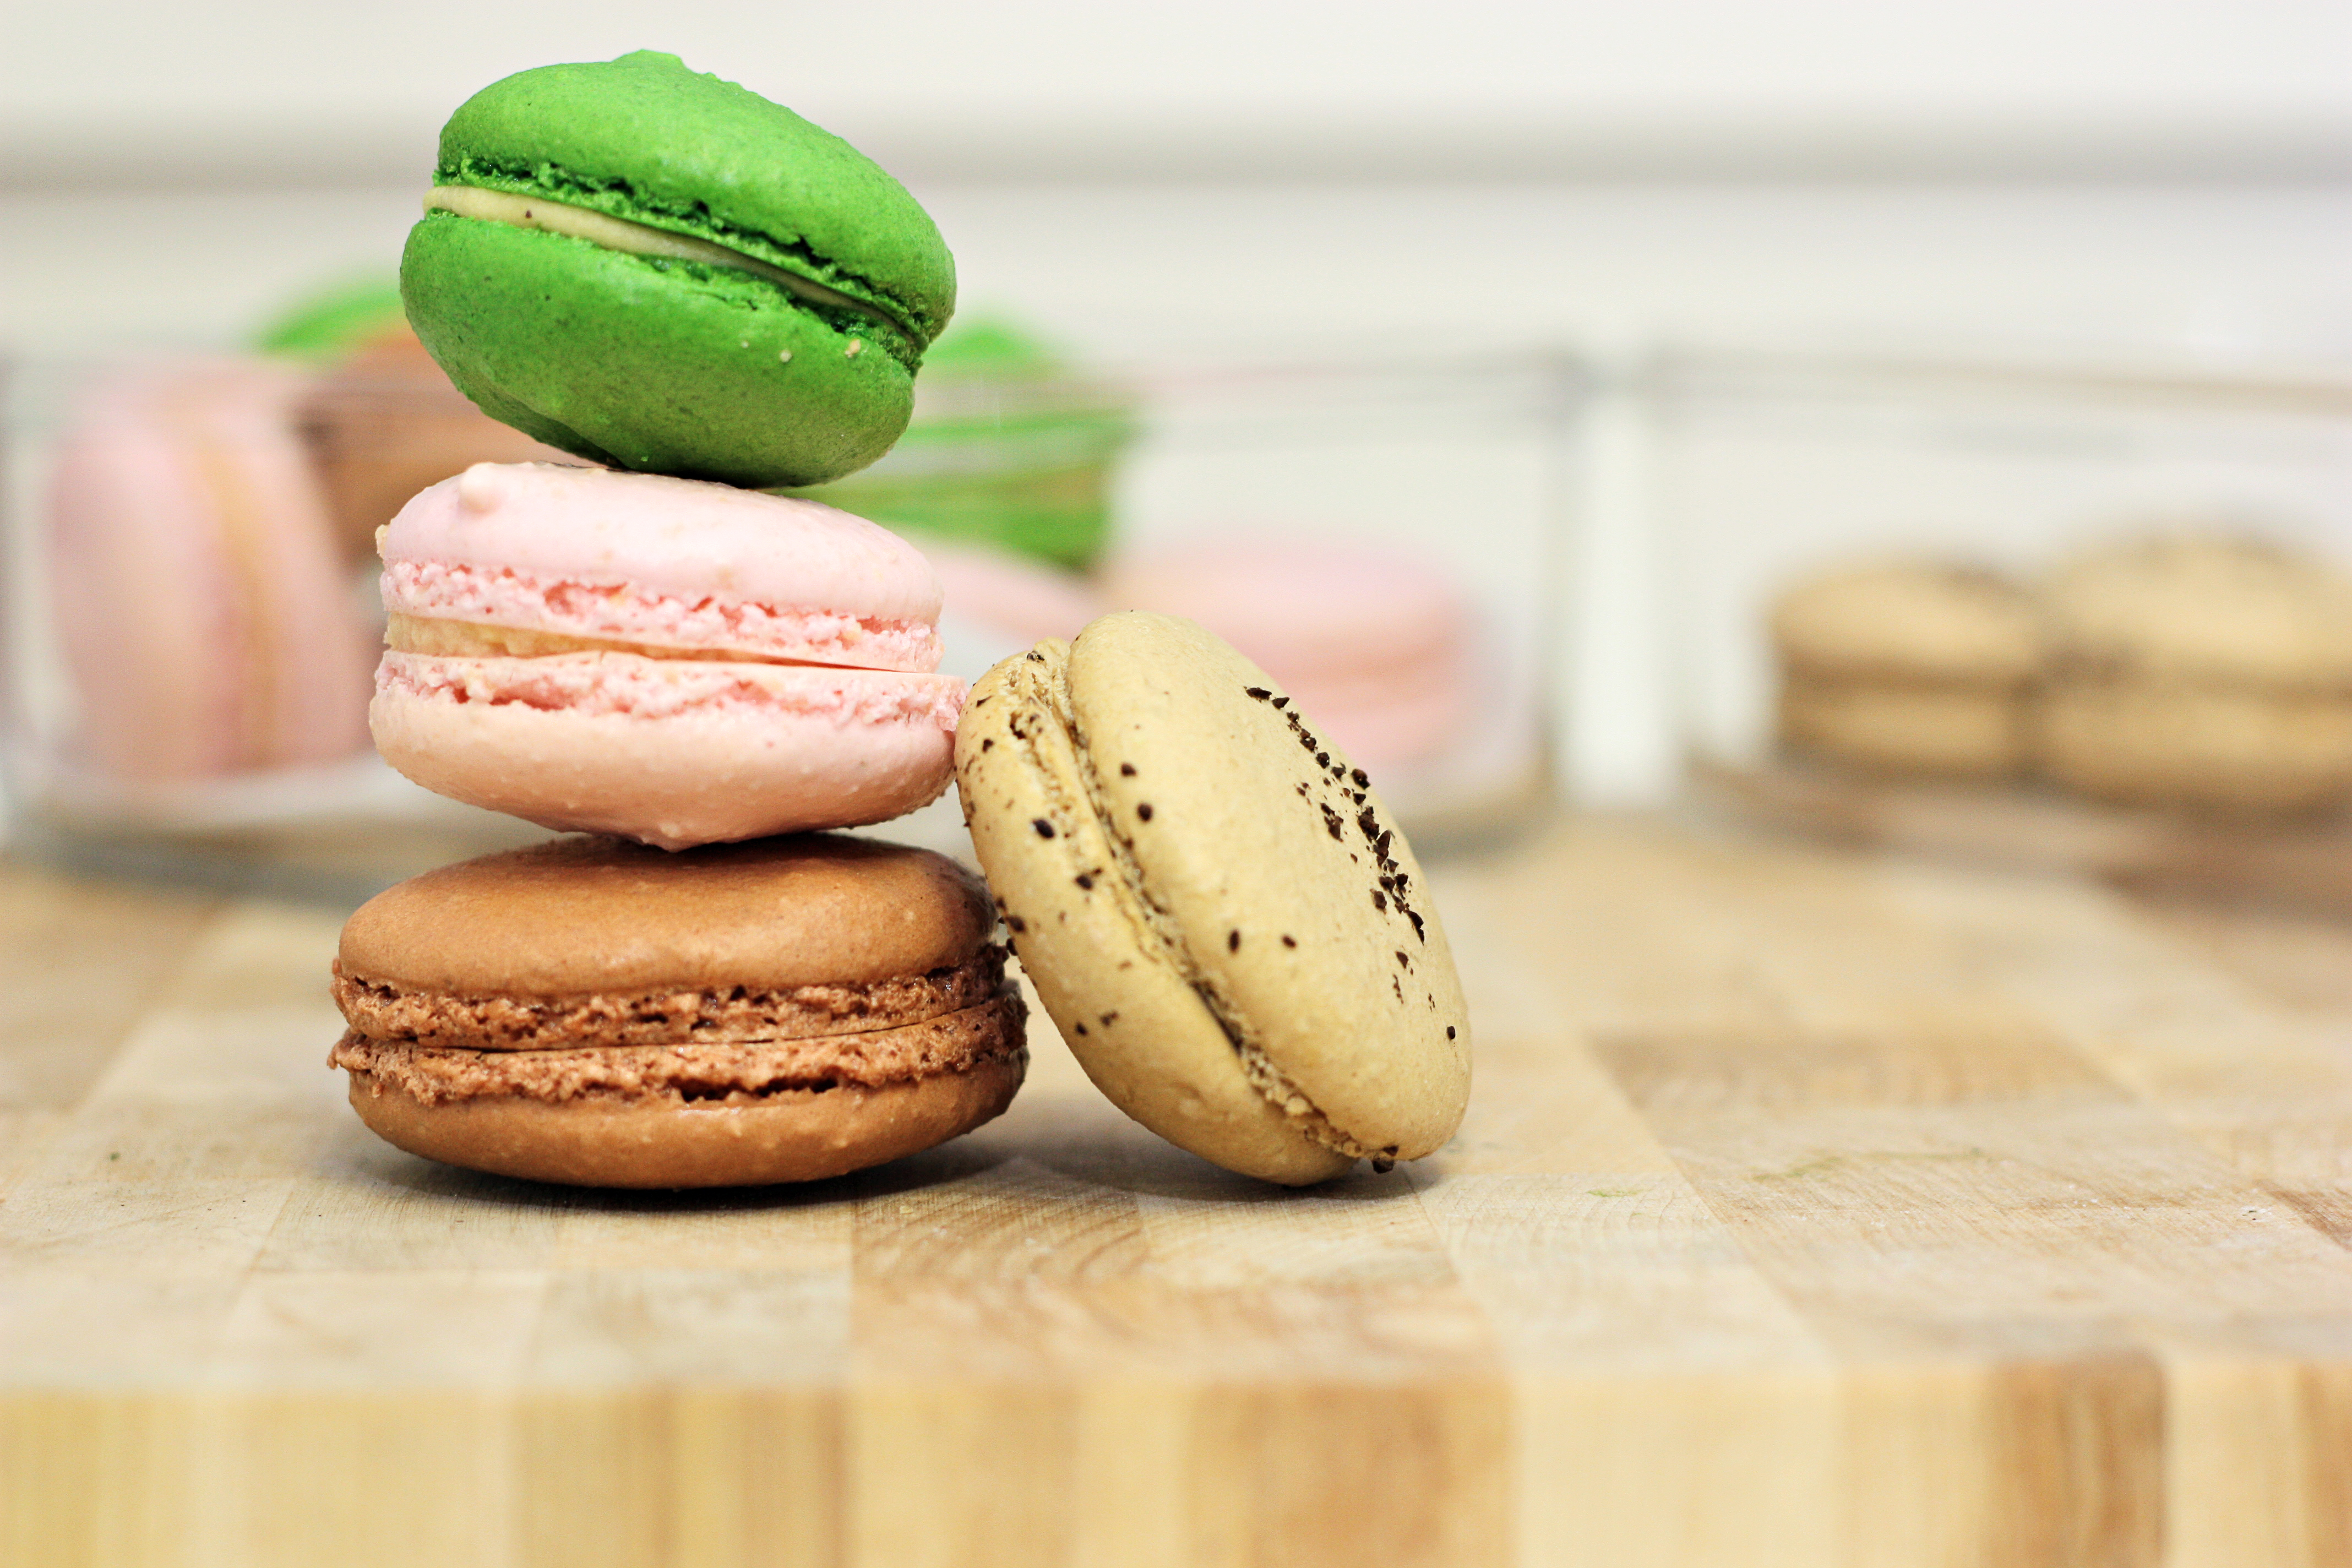 macaron-best parisien food-top specialties paris